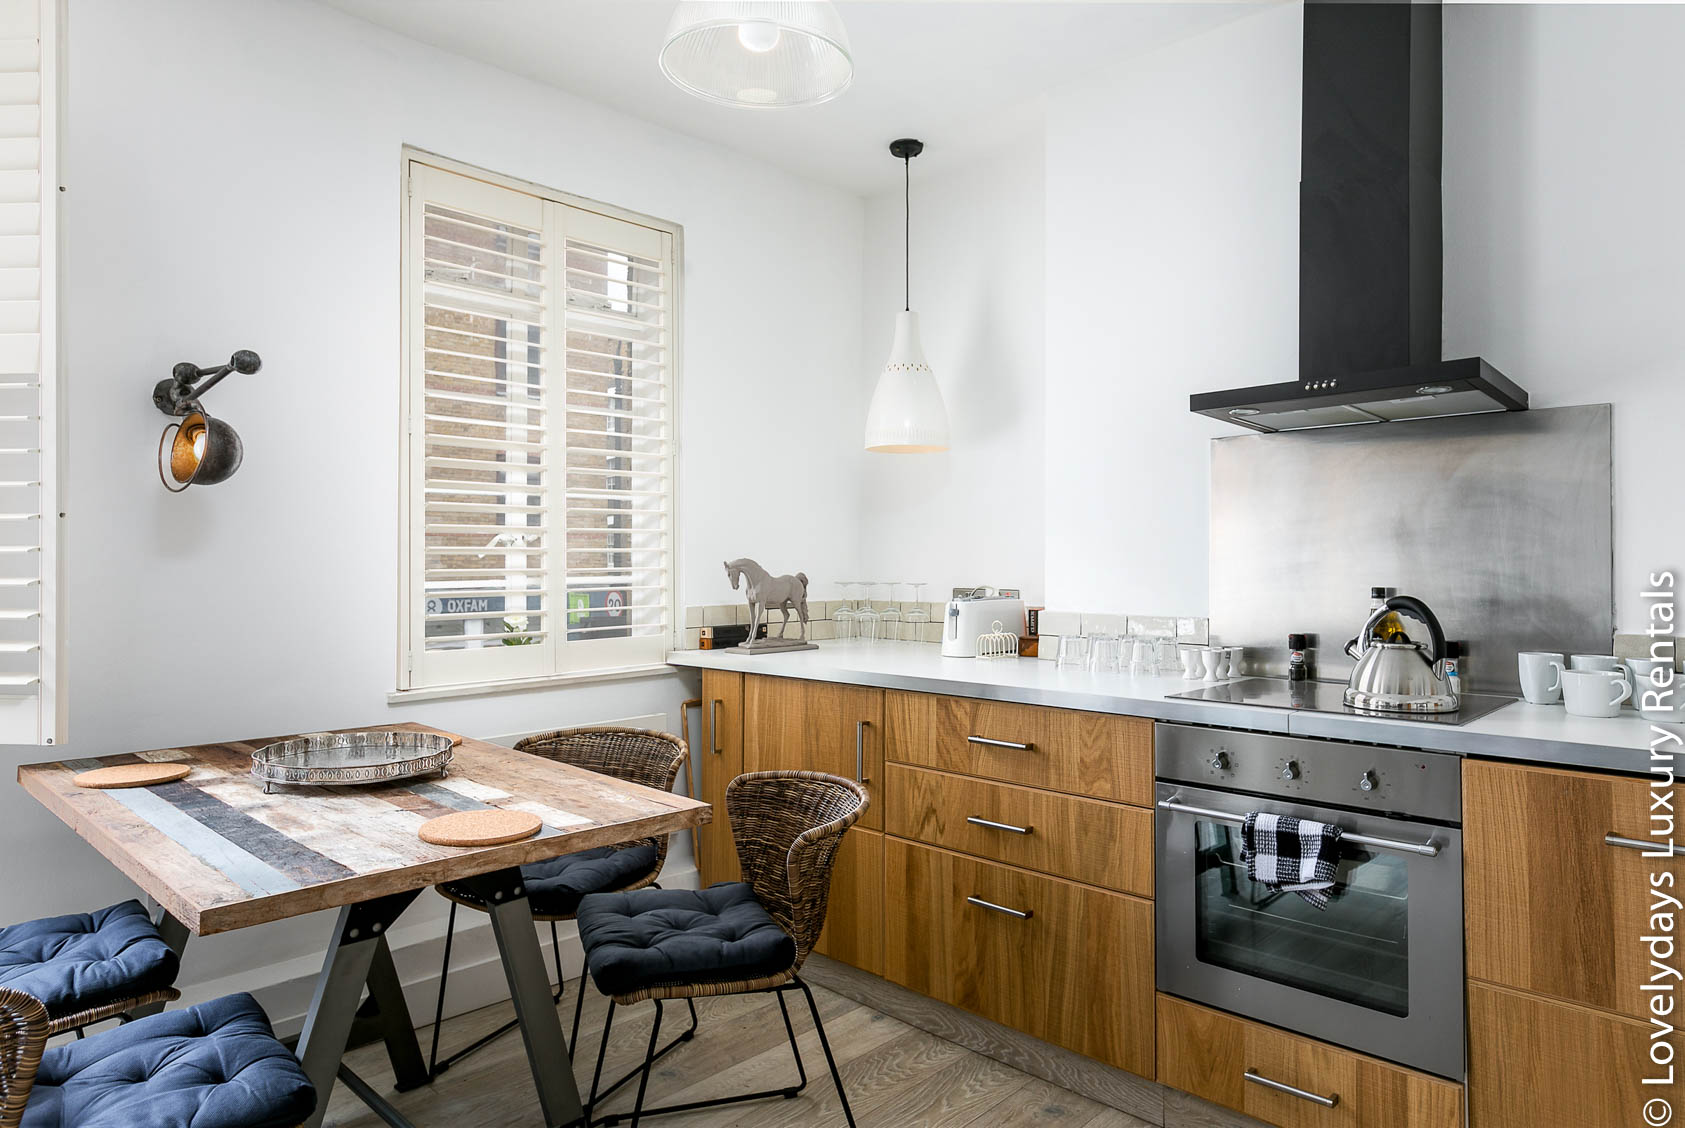 Lovelydays luxury service apartment rental - London - Fitzrovia - Goodge 55 - Lovelysuite - 2 bedrooms - 3 bathrooms - Luxury kitchen - 06727aaab1e2 - Lovelydays